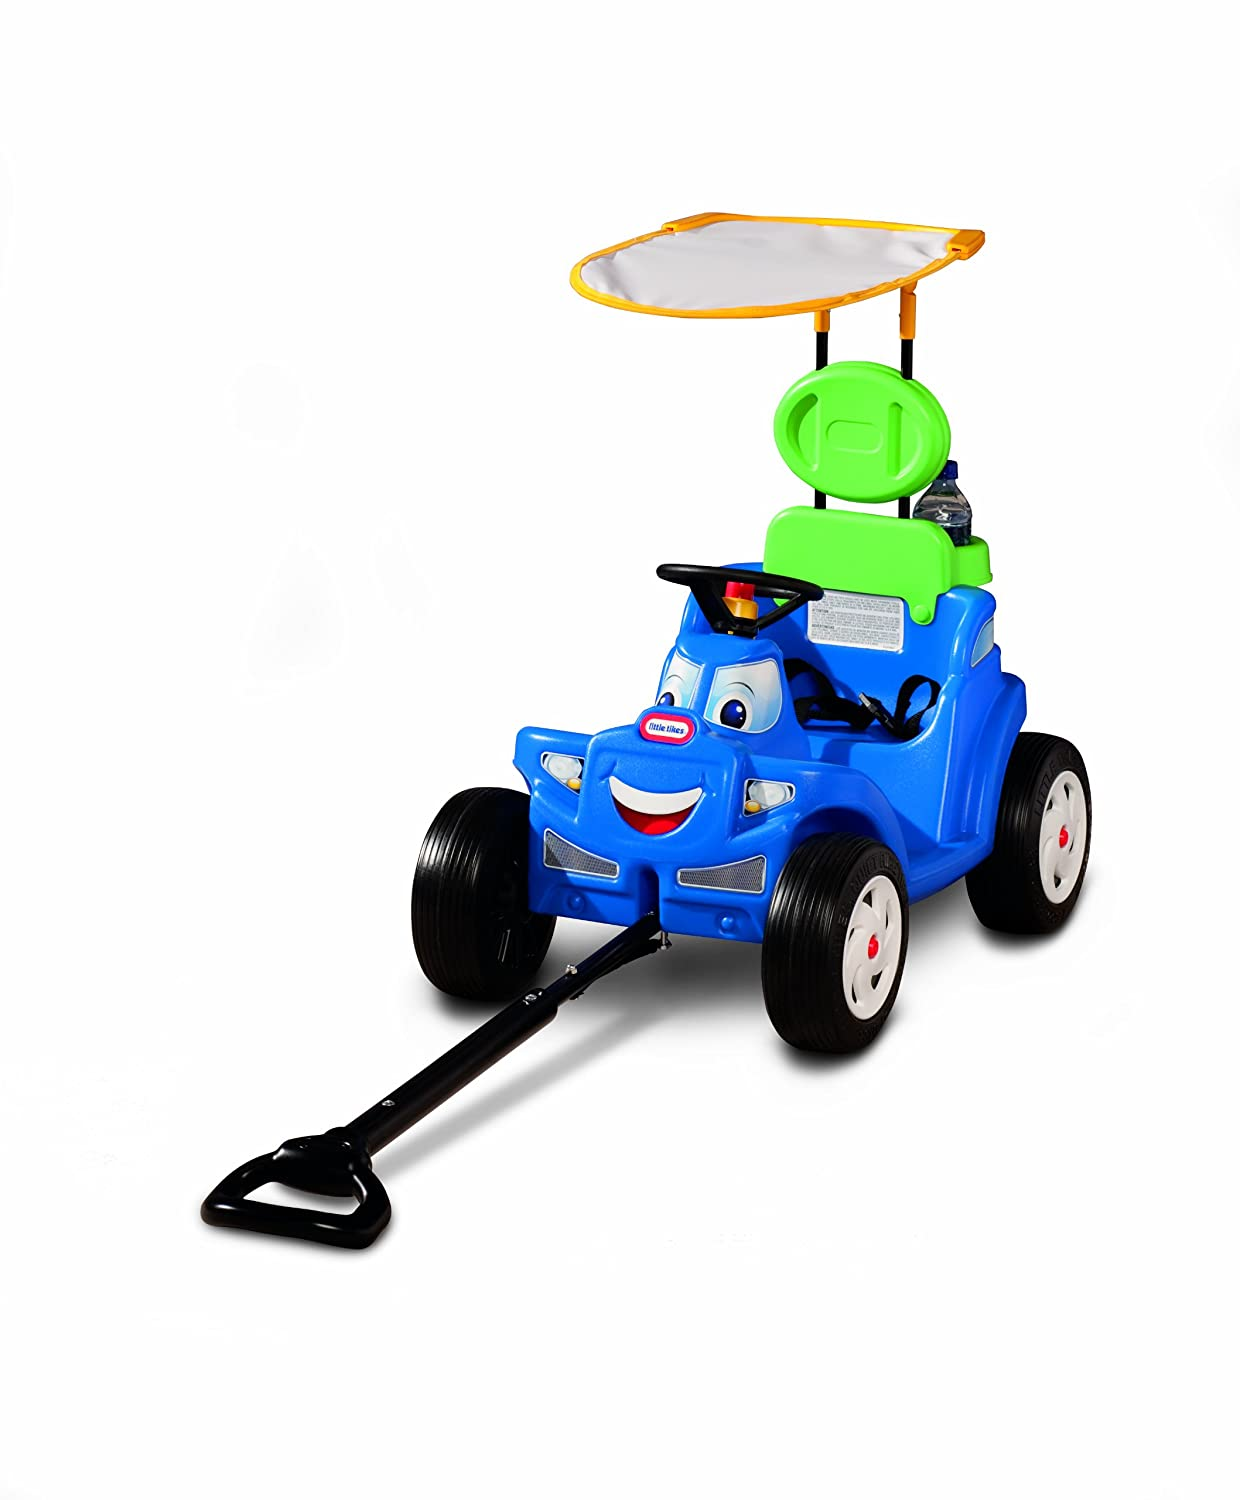 An Image of Little Tikes Deluxe 2-in-1 Cozy Roadster